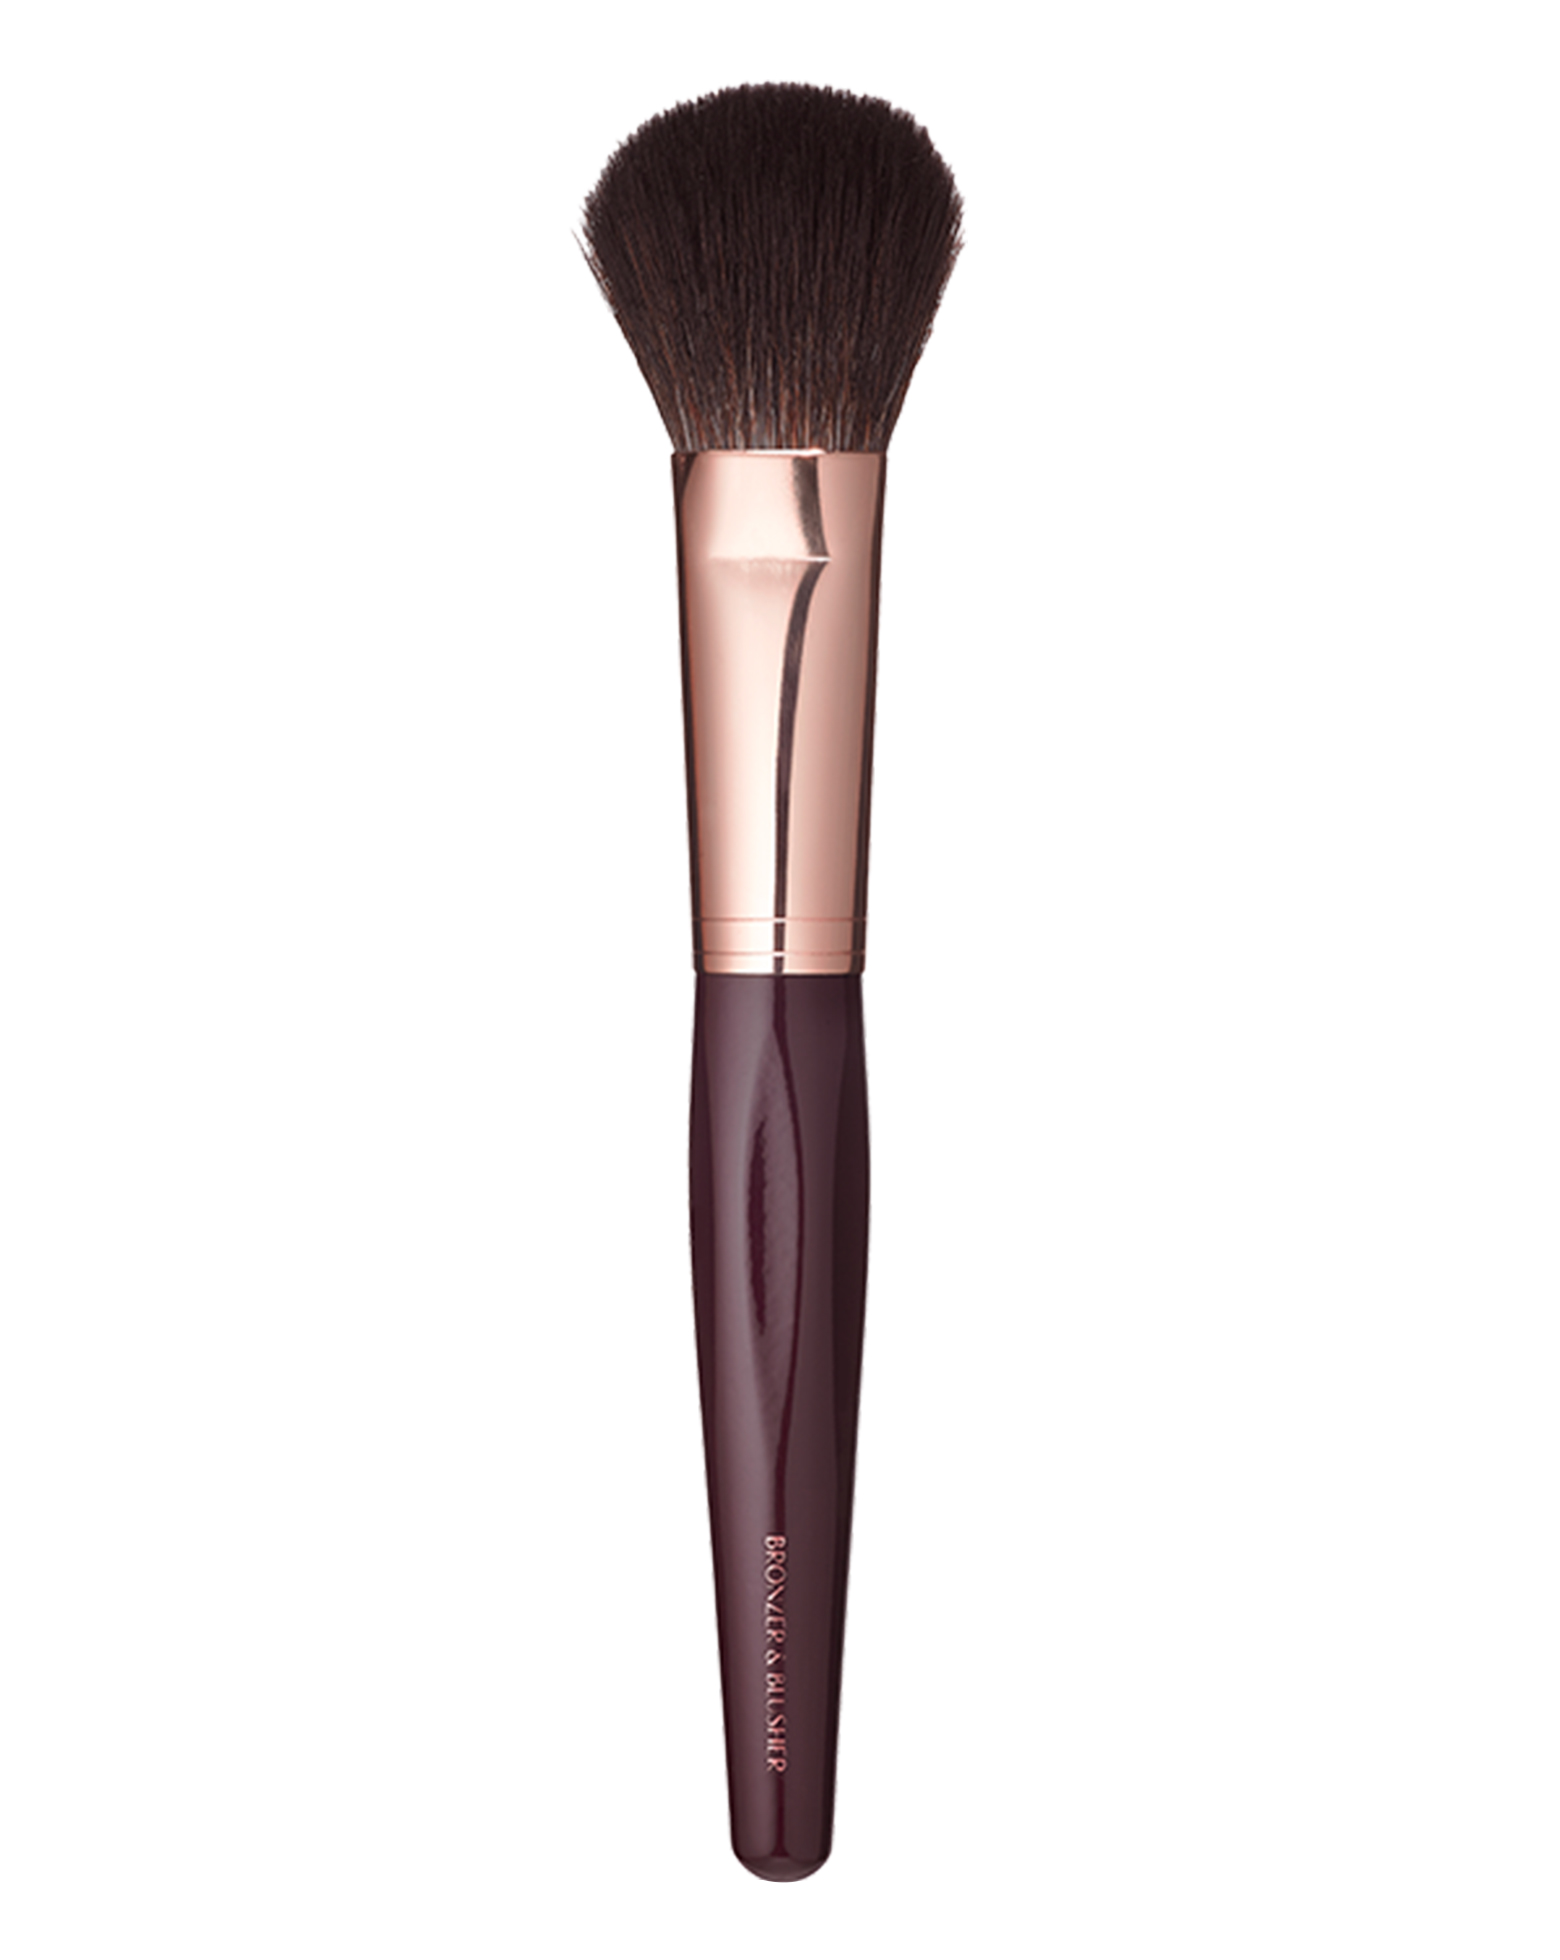 Charlotte Tilbury | Bronzer & Blusher Brush | Cult Beauty